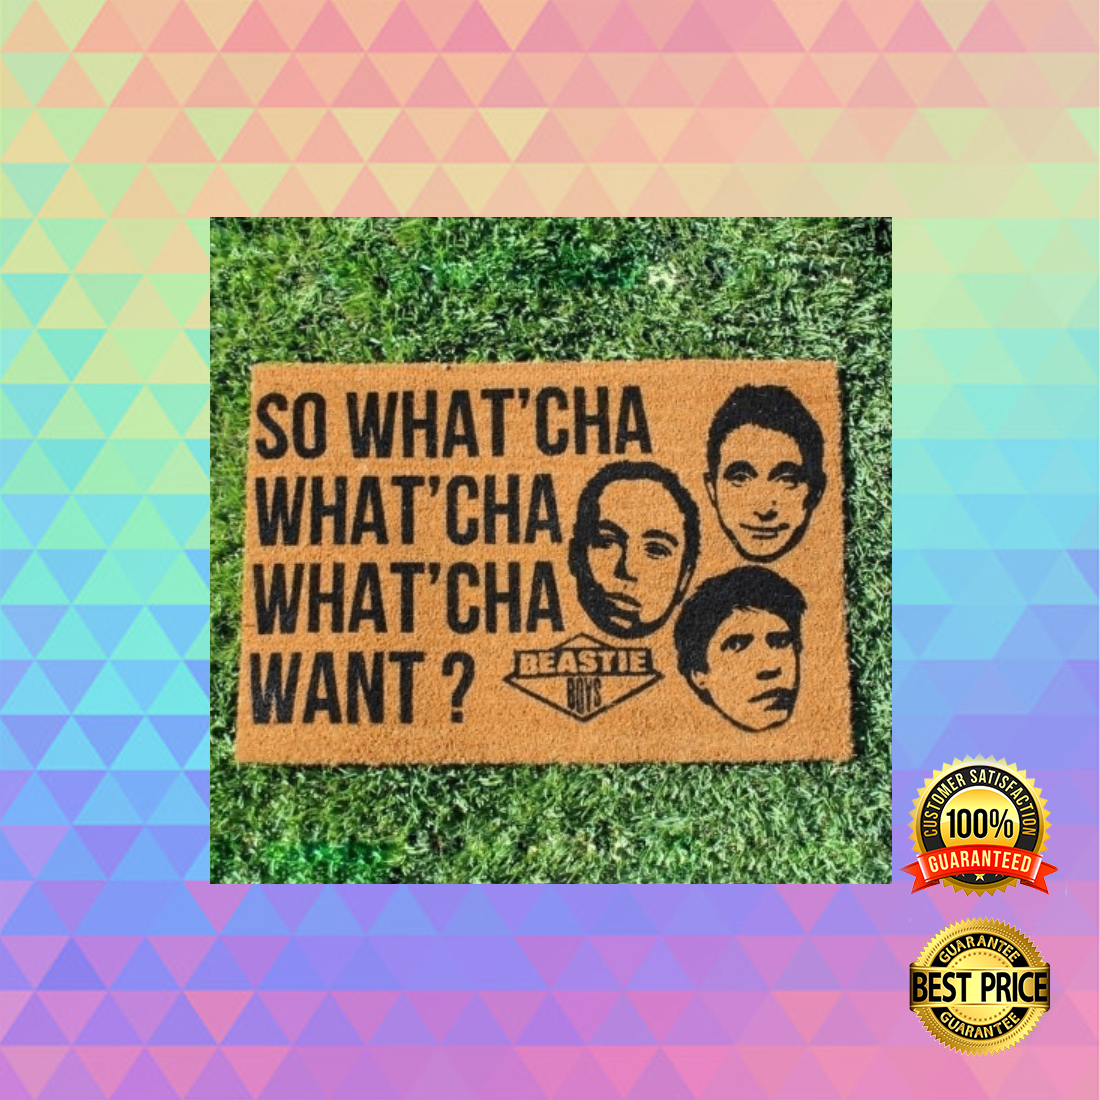 So what'cha what'cha what'cha want doormat 3